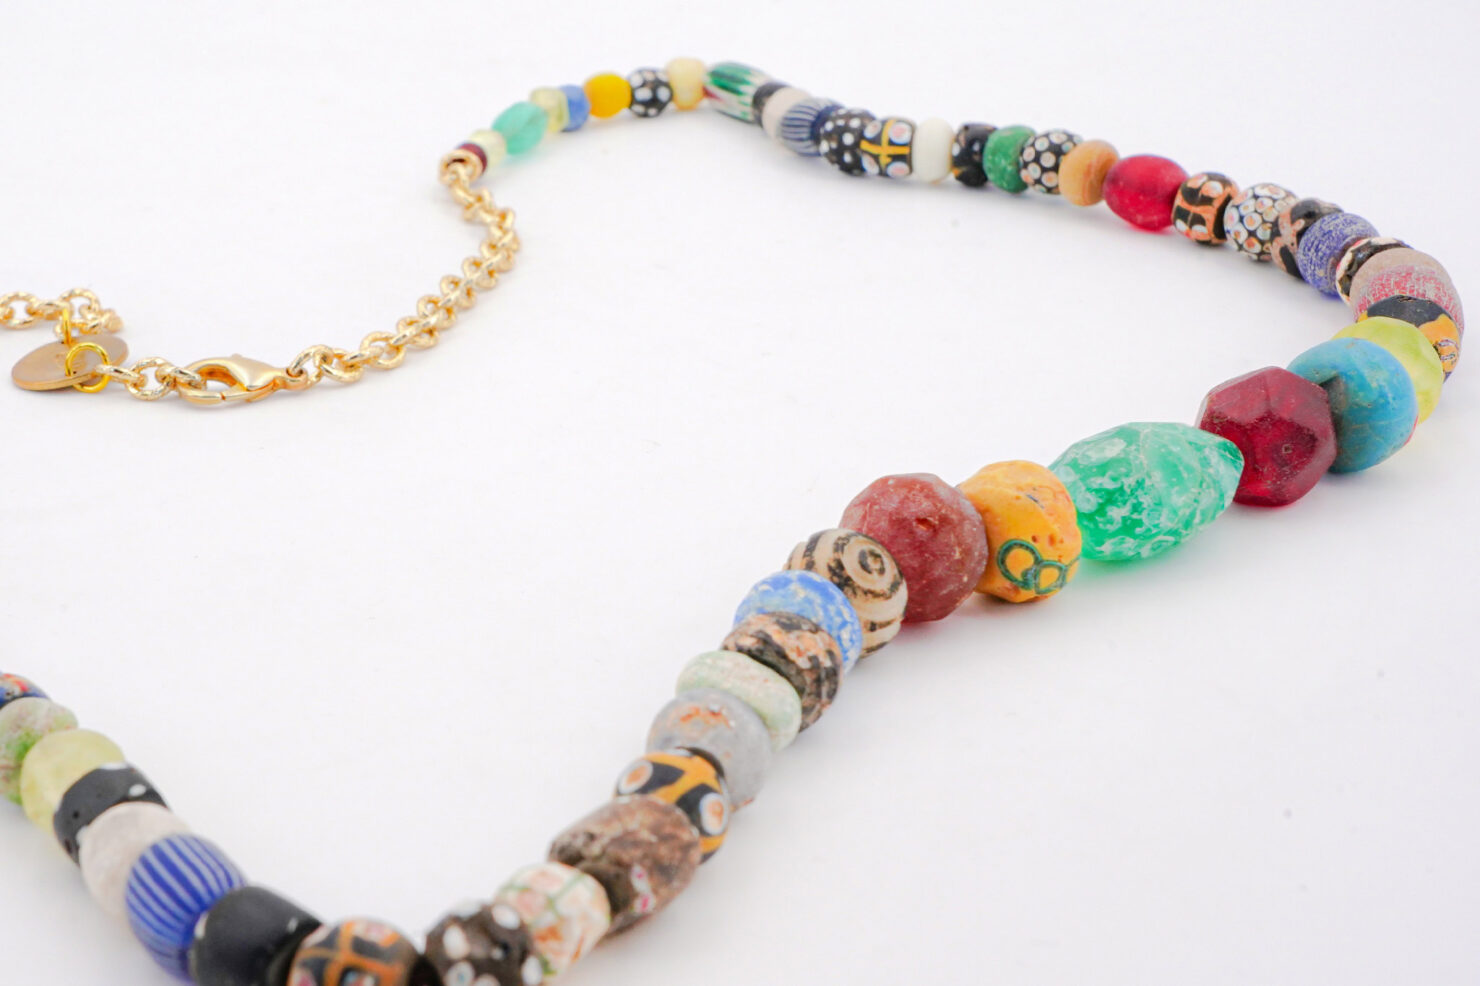 NECKLACE ANCIENT AFRICAN GLASS PEARLS 1 - M11SHOP